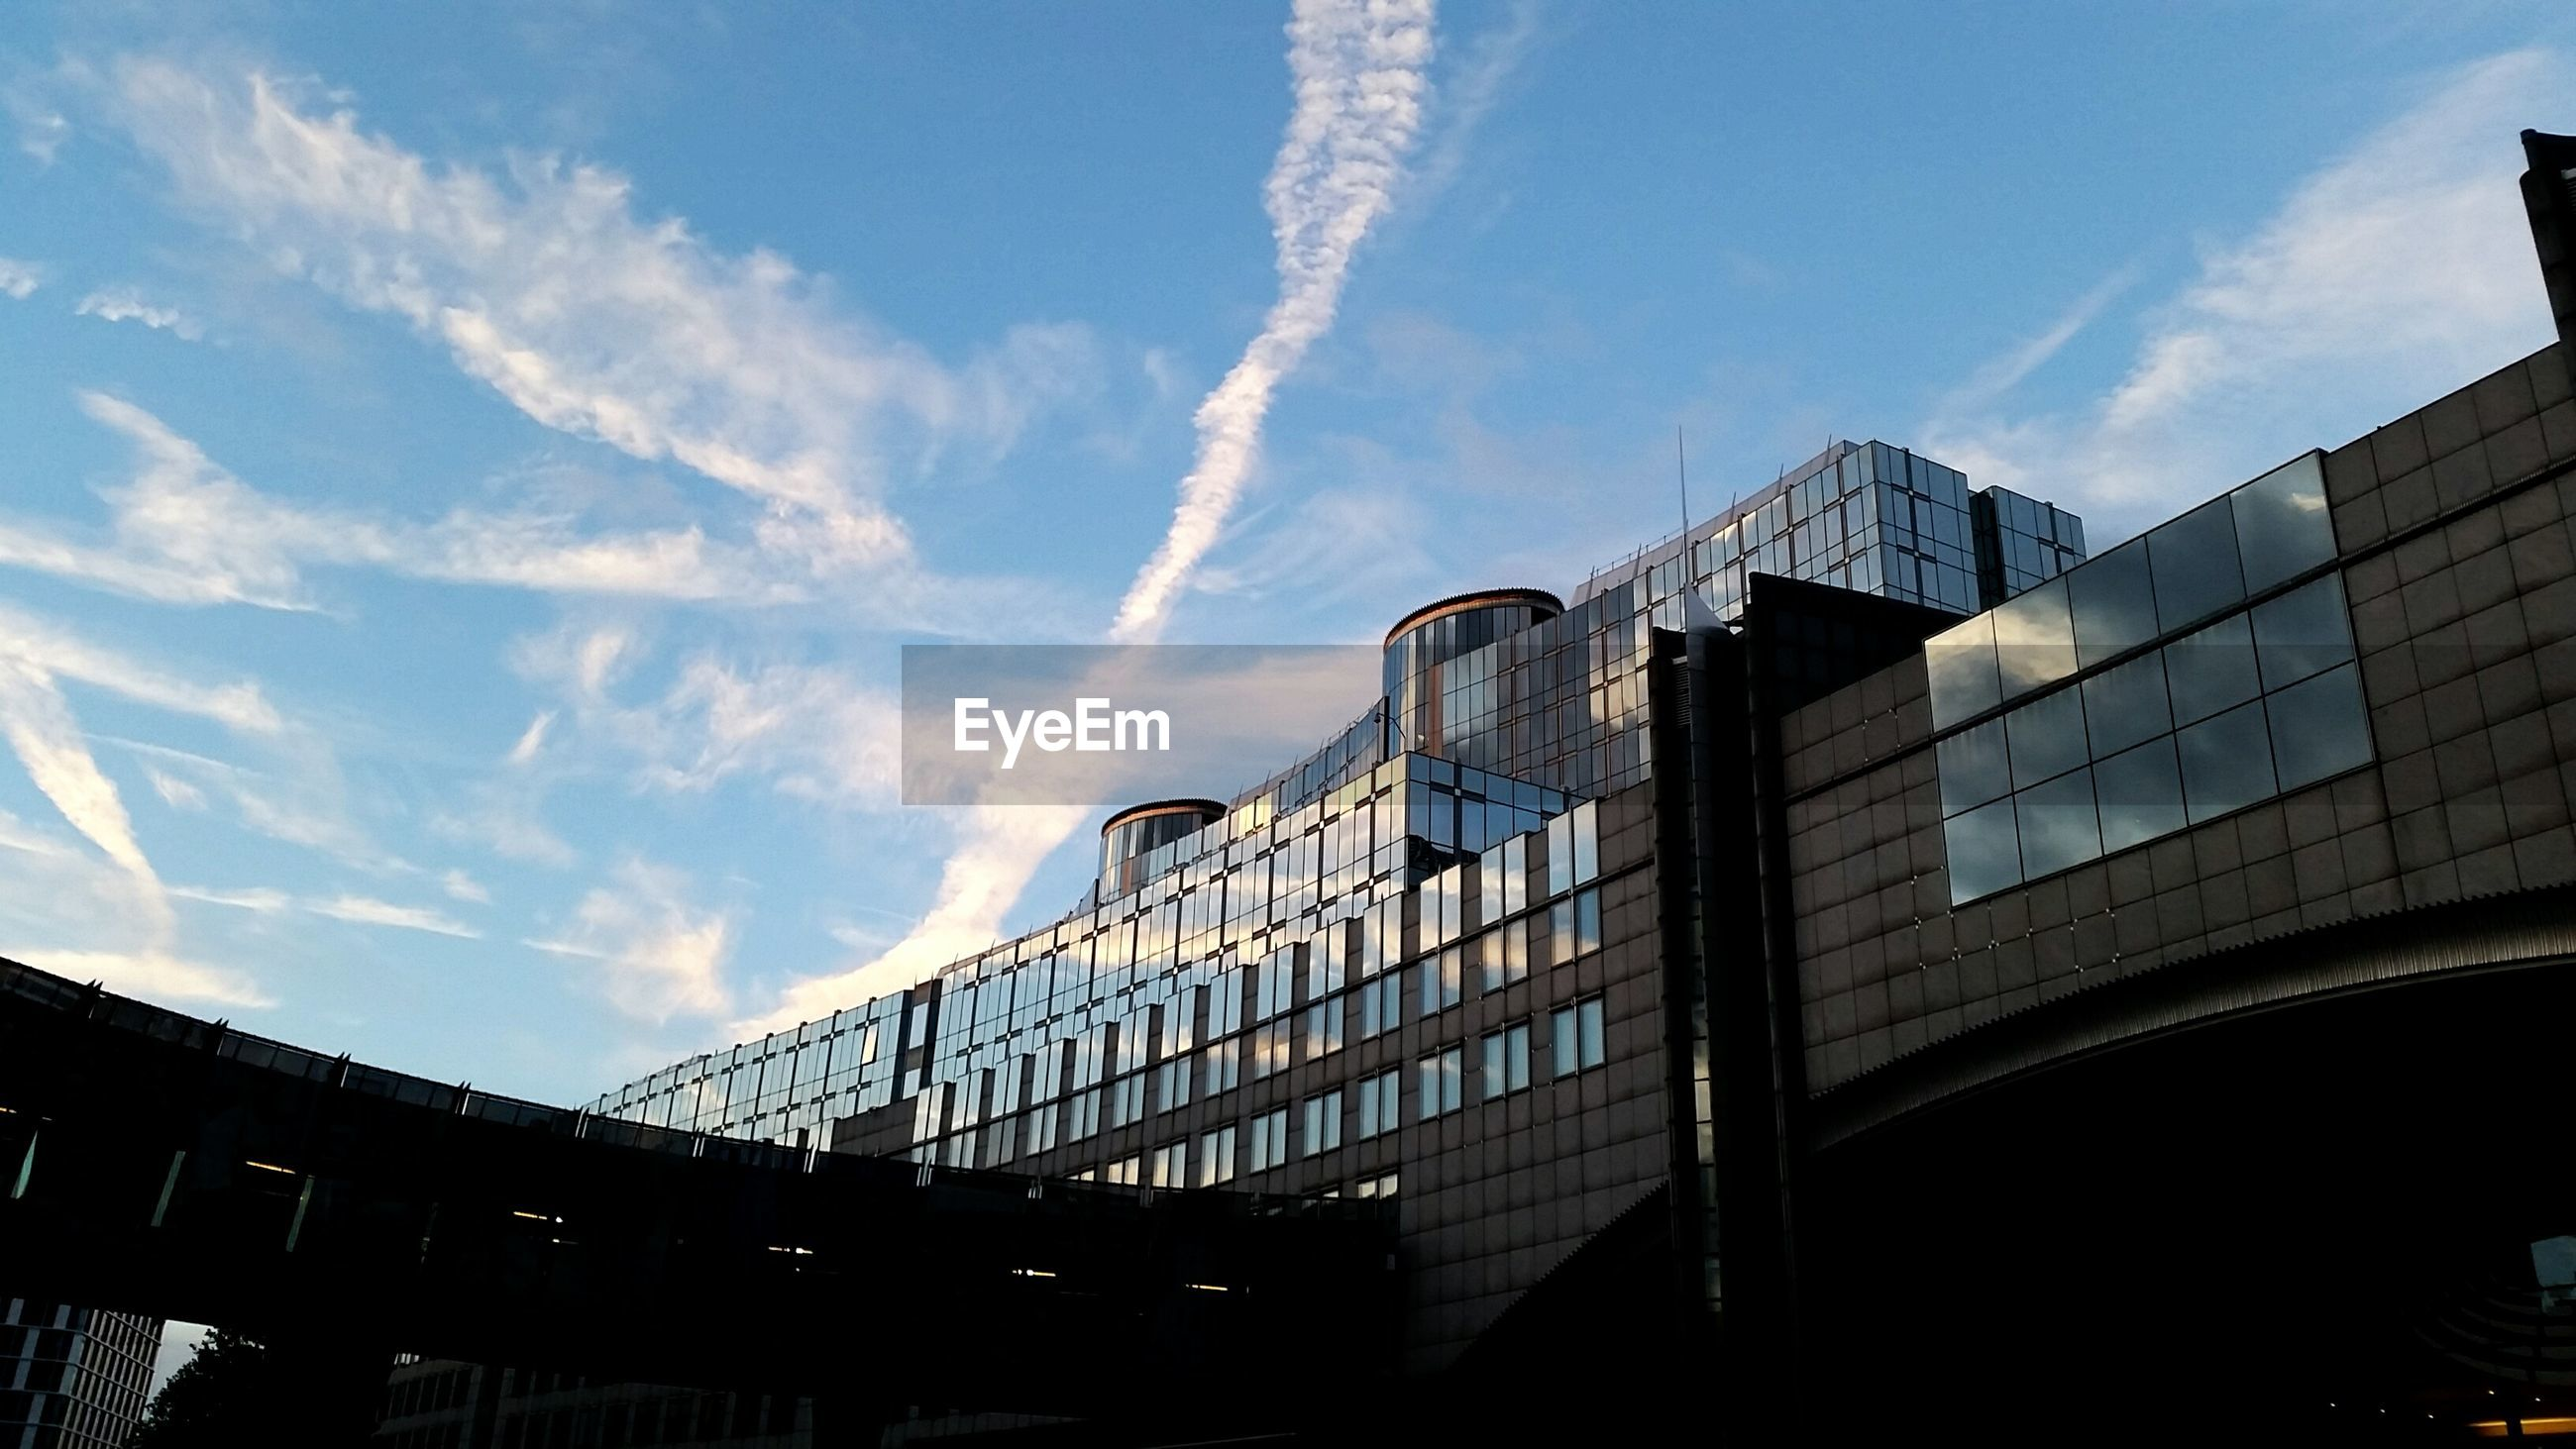 architecture, built structure, low angle view, building exterior, sky, cloud, industry, development, vapor trail, blue, outdoors, industrial building, day, office building, high section, cloud - sky, modern, city life, no people, progress, urban skyline